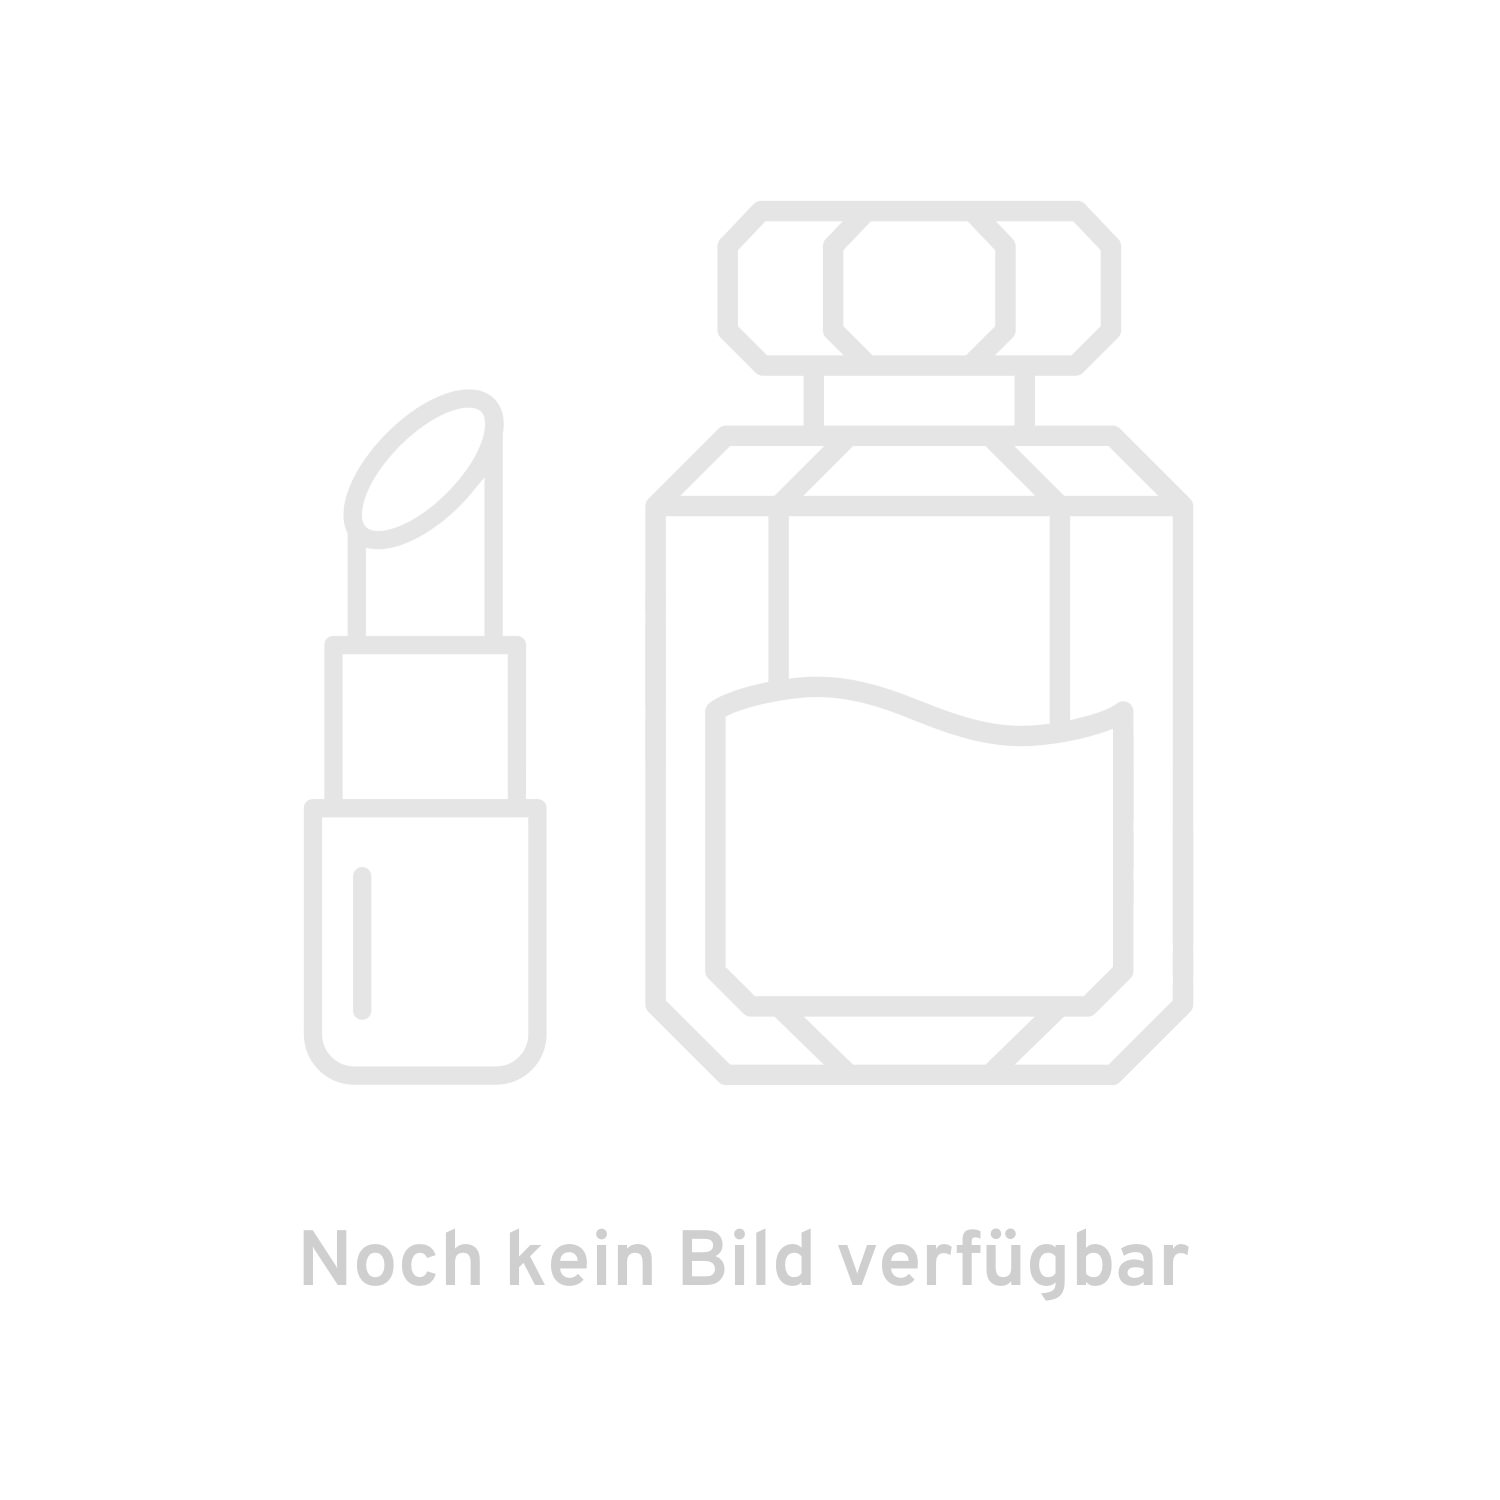 Men's Cologne Collection - Exklusiv Ludwig Beck